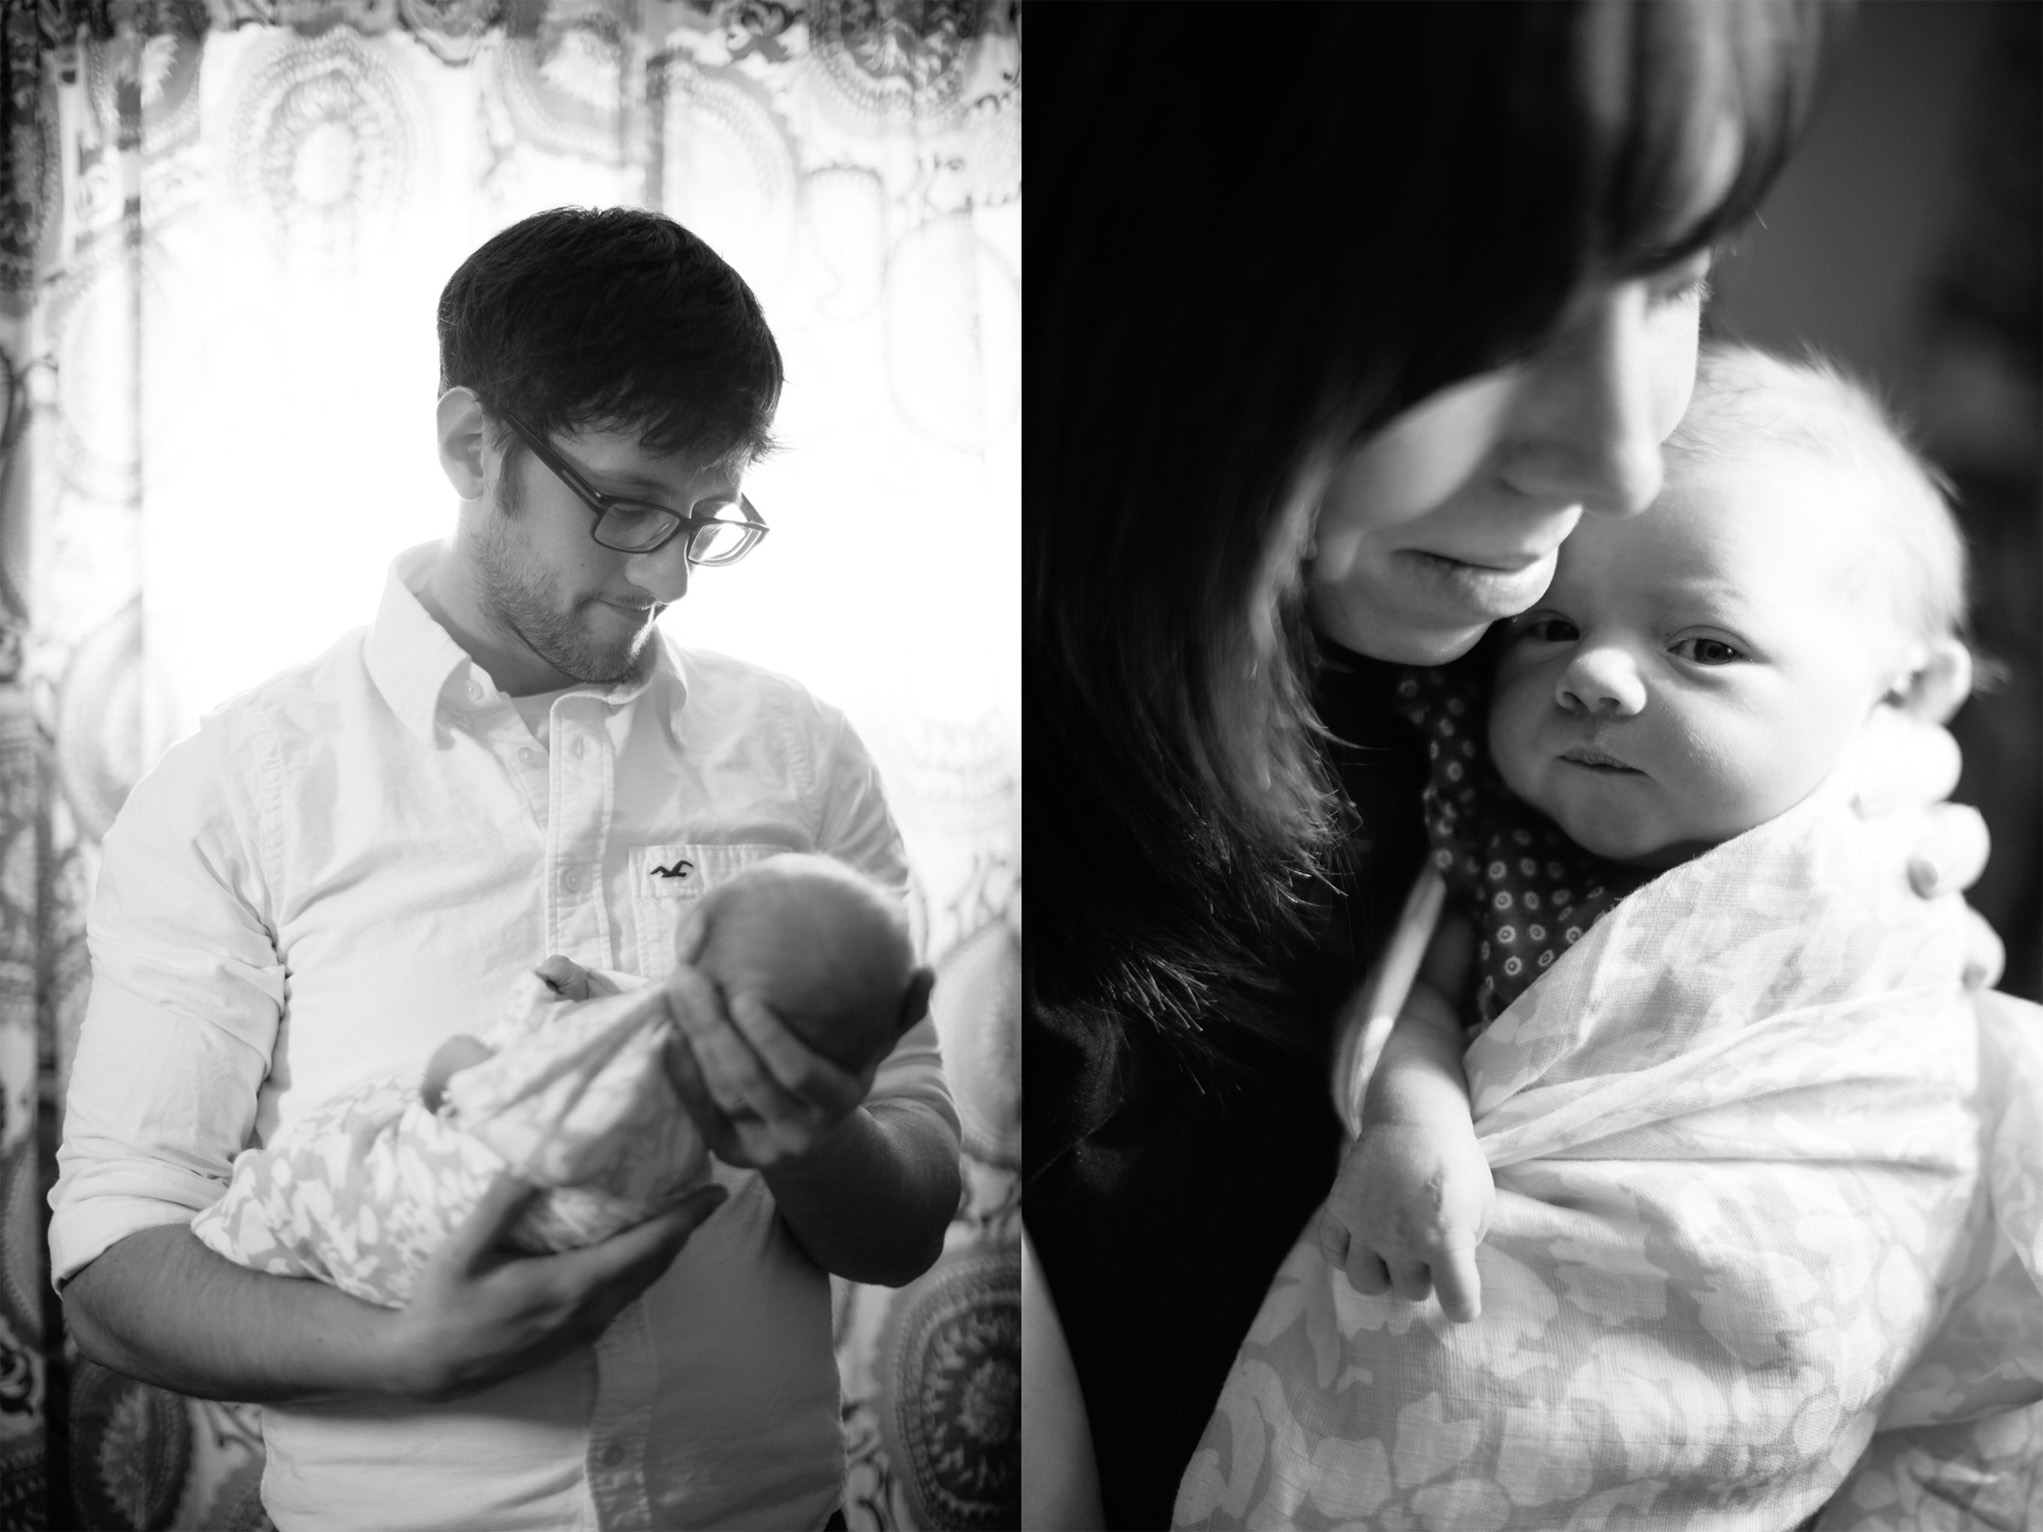 bowman_newborn_blog_tierney_cyanne_photography_3.jpg